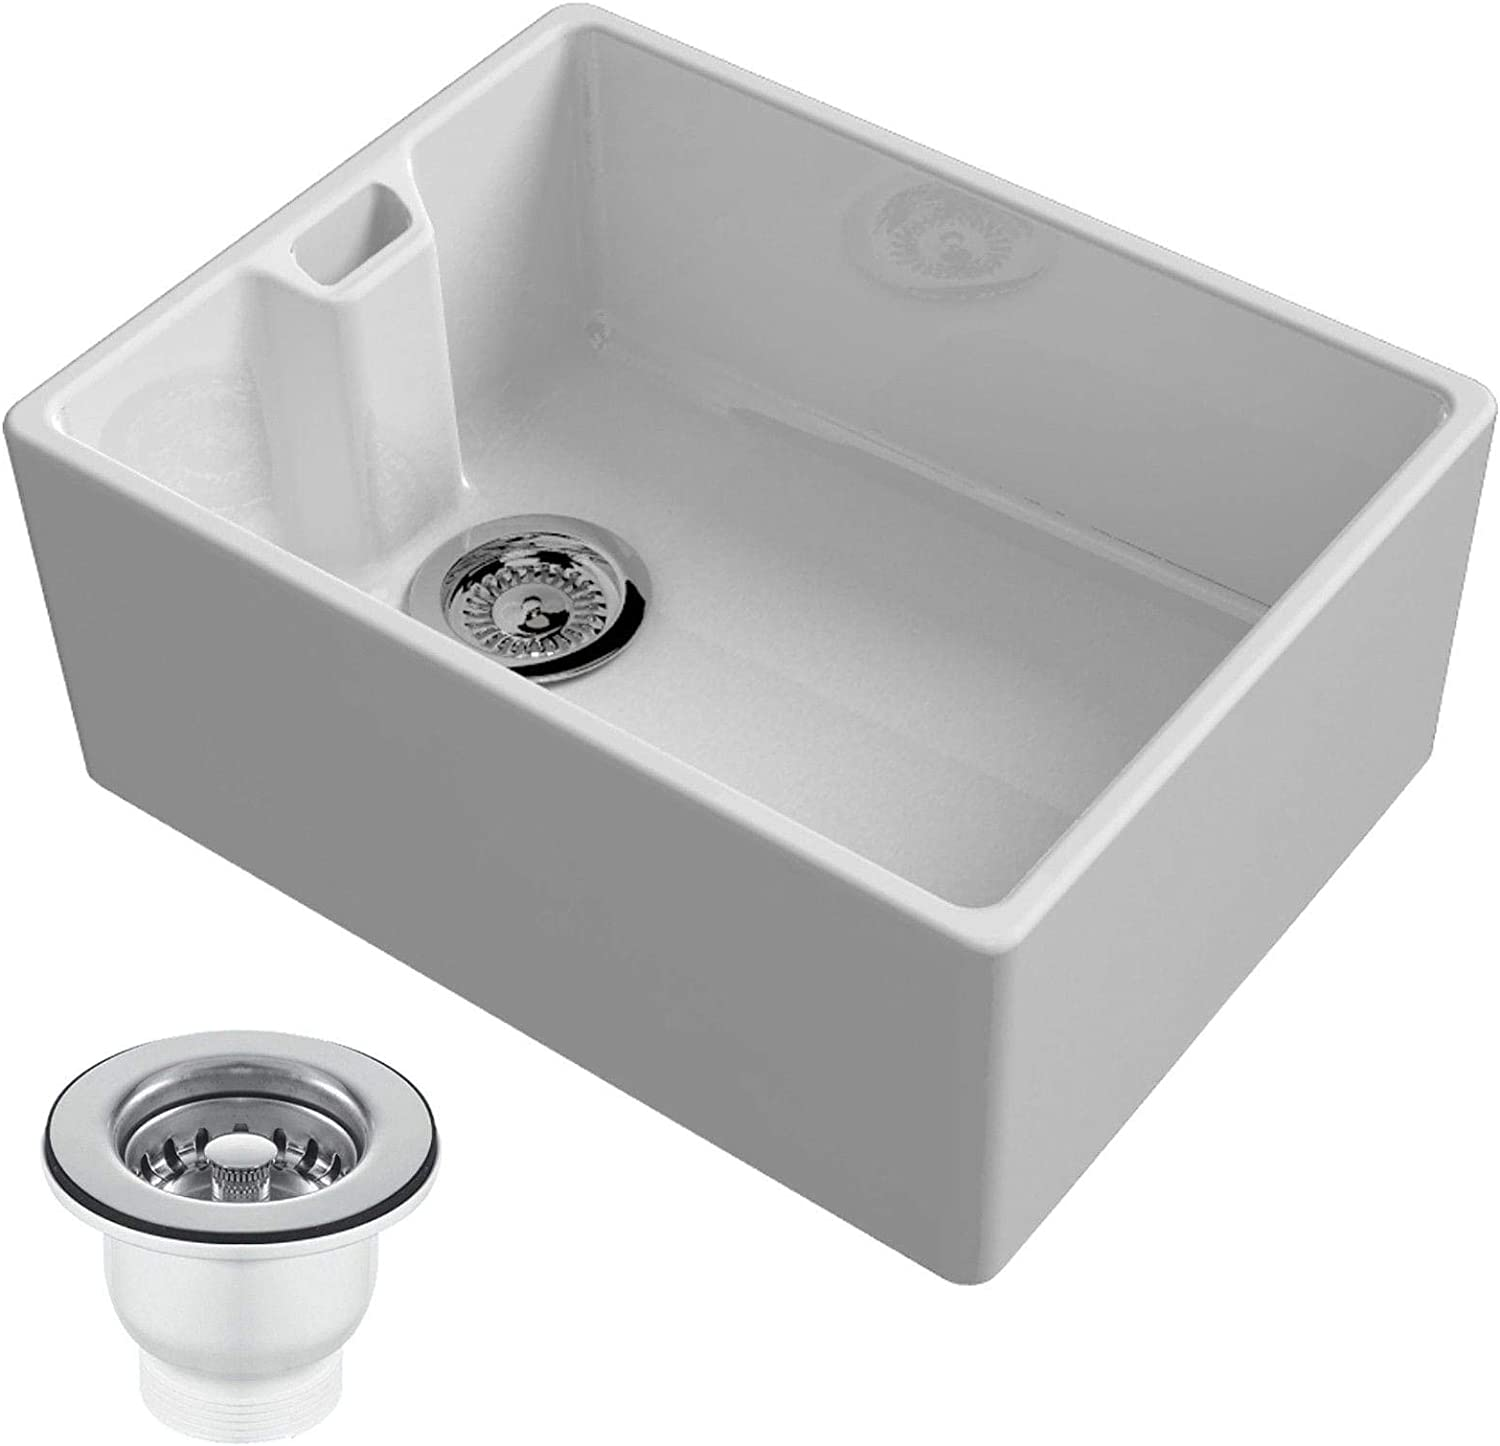 Reginox Regi-Ceramic Belfast, 1 Bowl Sink, White with 90mm Strainer Waste